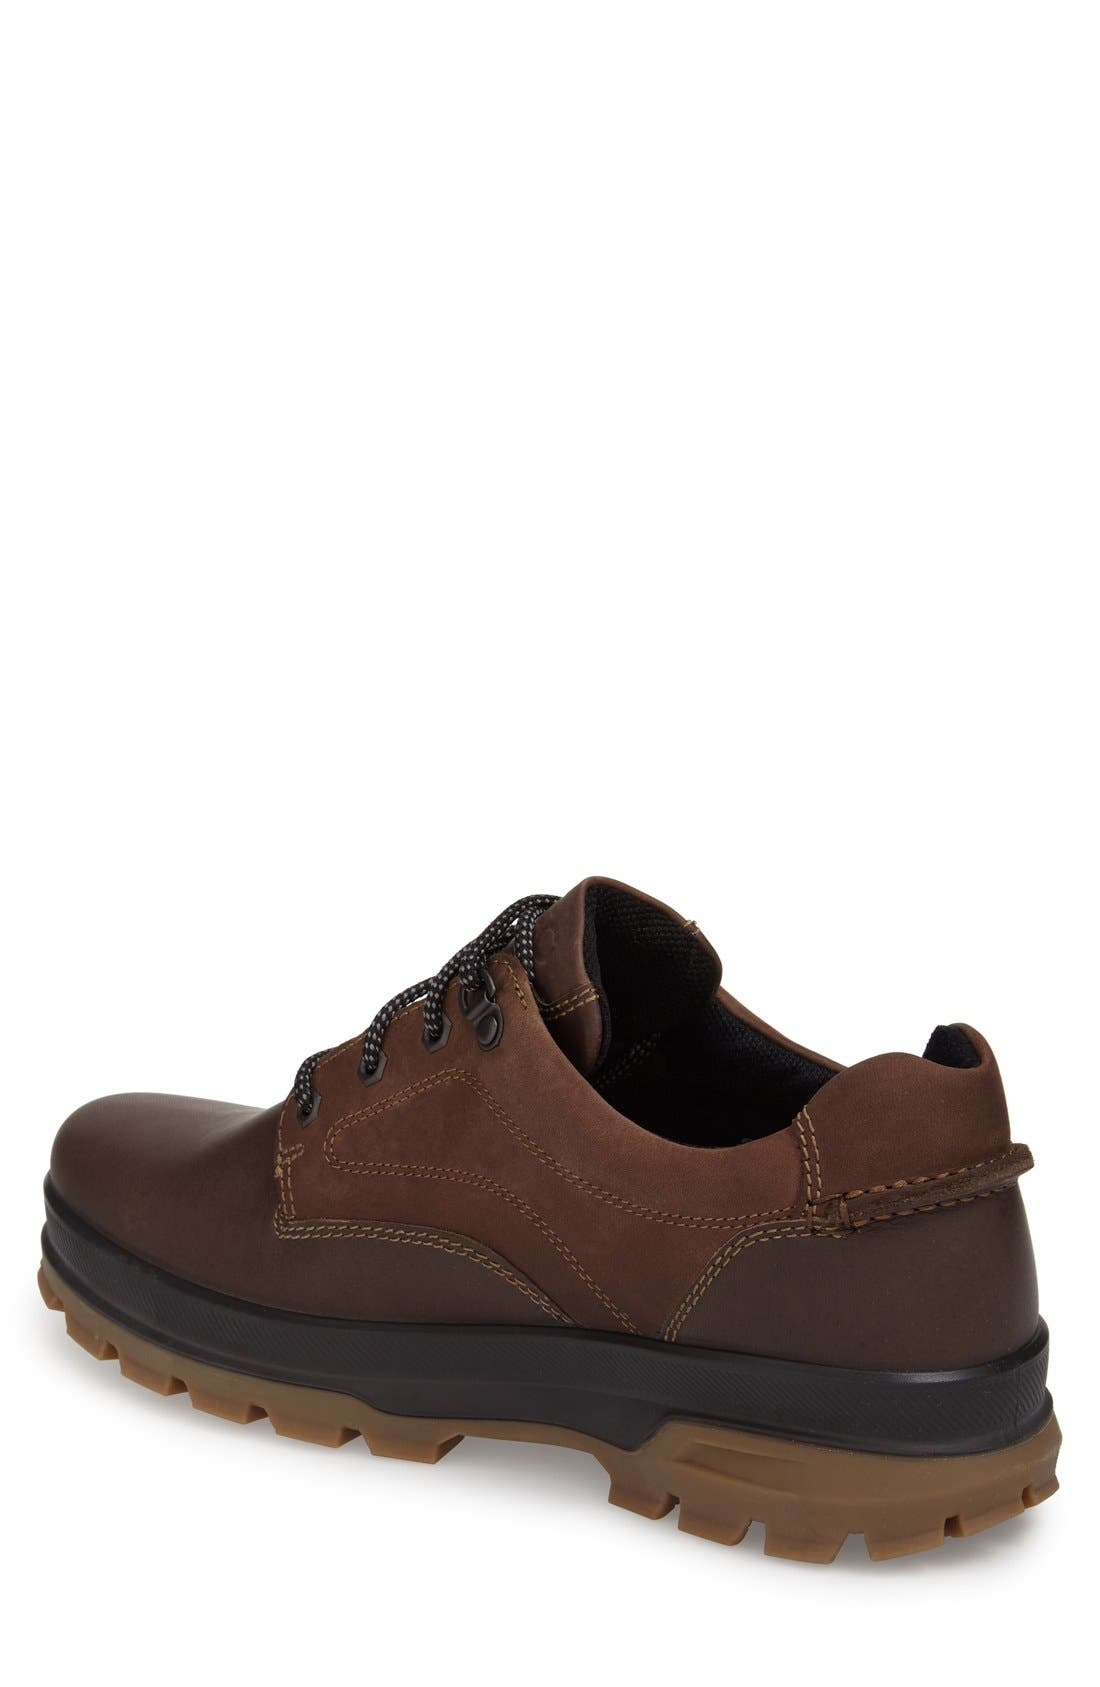 'Rugged Track GTX' Oxford,                             Alternate thumbnail 3, color,                             DARK CLAY/ COFFEE LEATHER